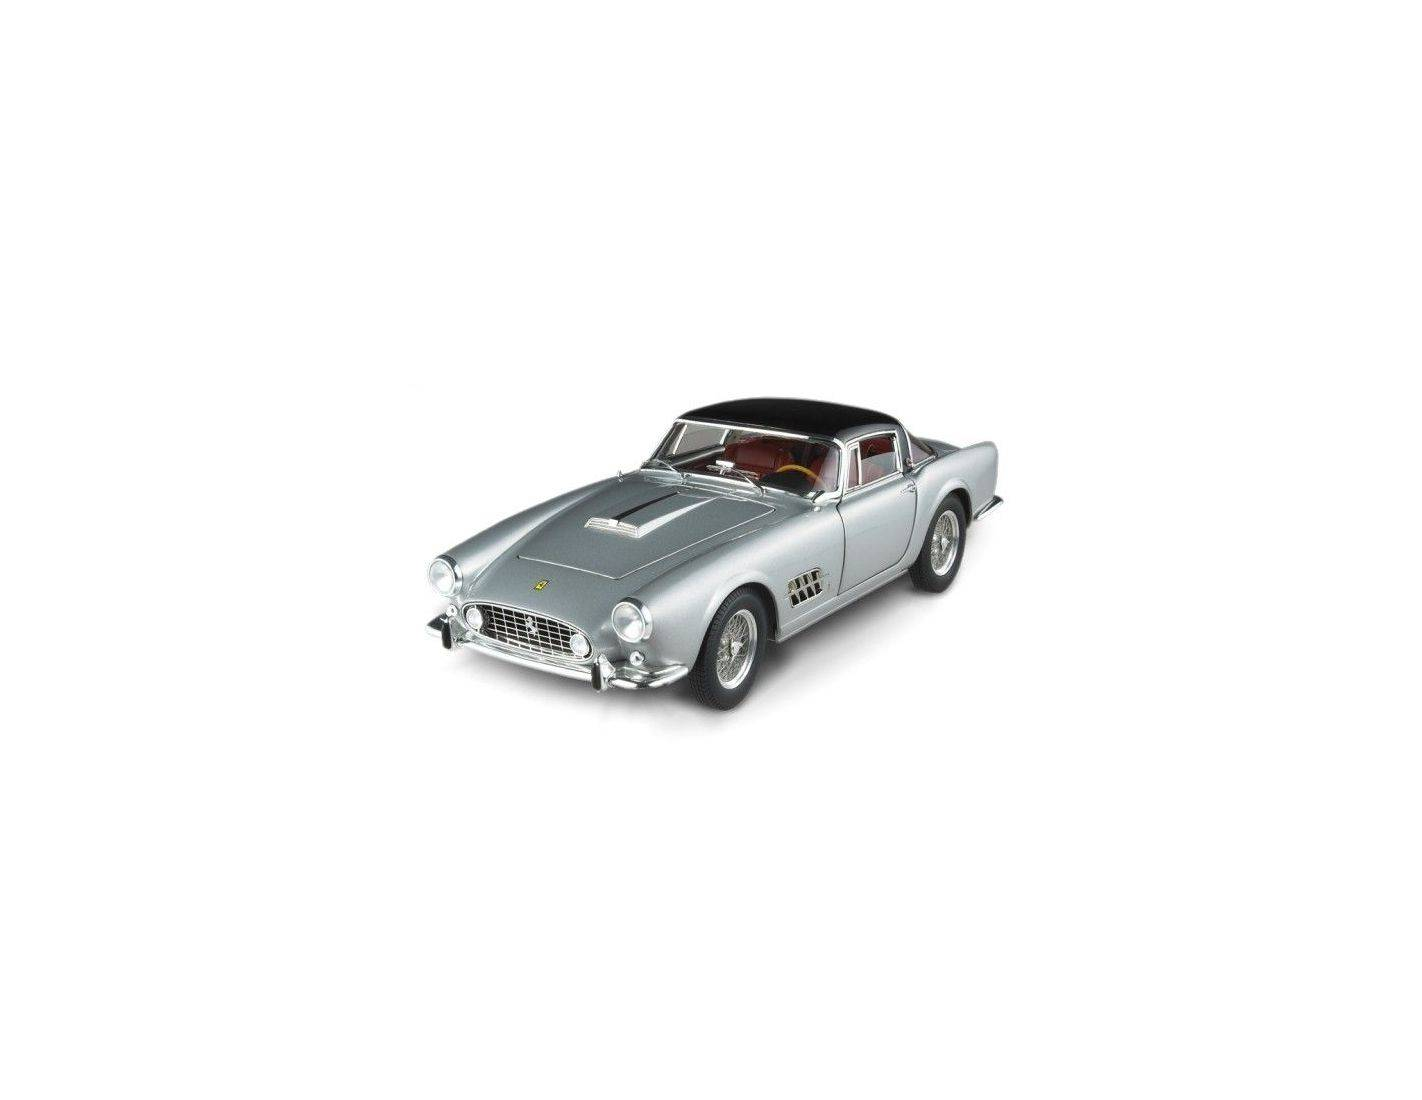 Hot Wheels HWN2048 FERRARI 410 SUPERAMERICA 1956 SILVER 1:18 Modellino